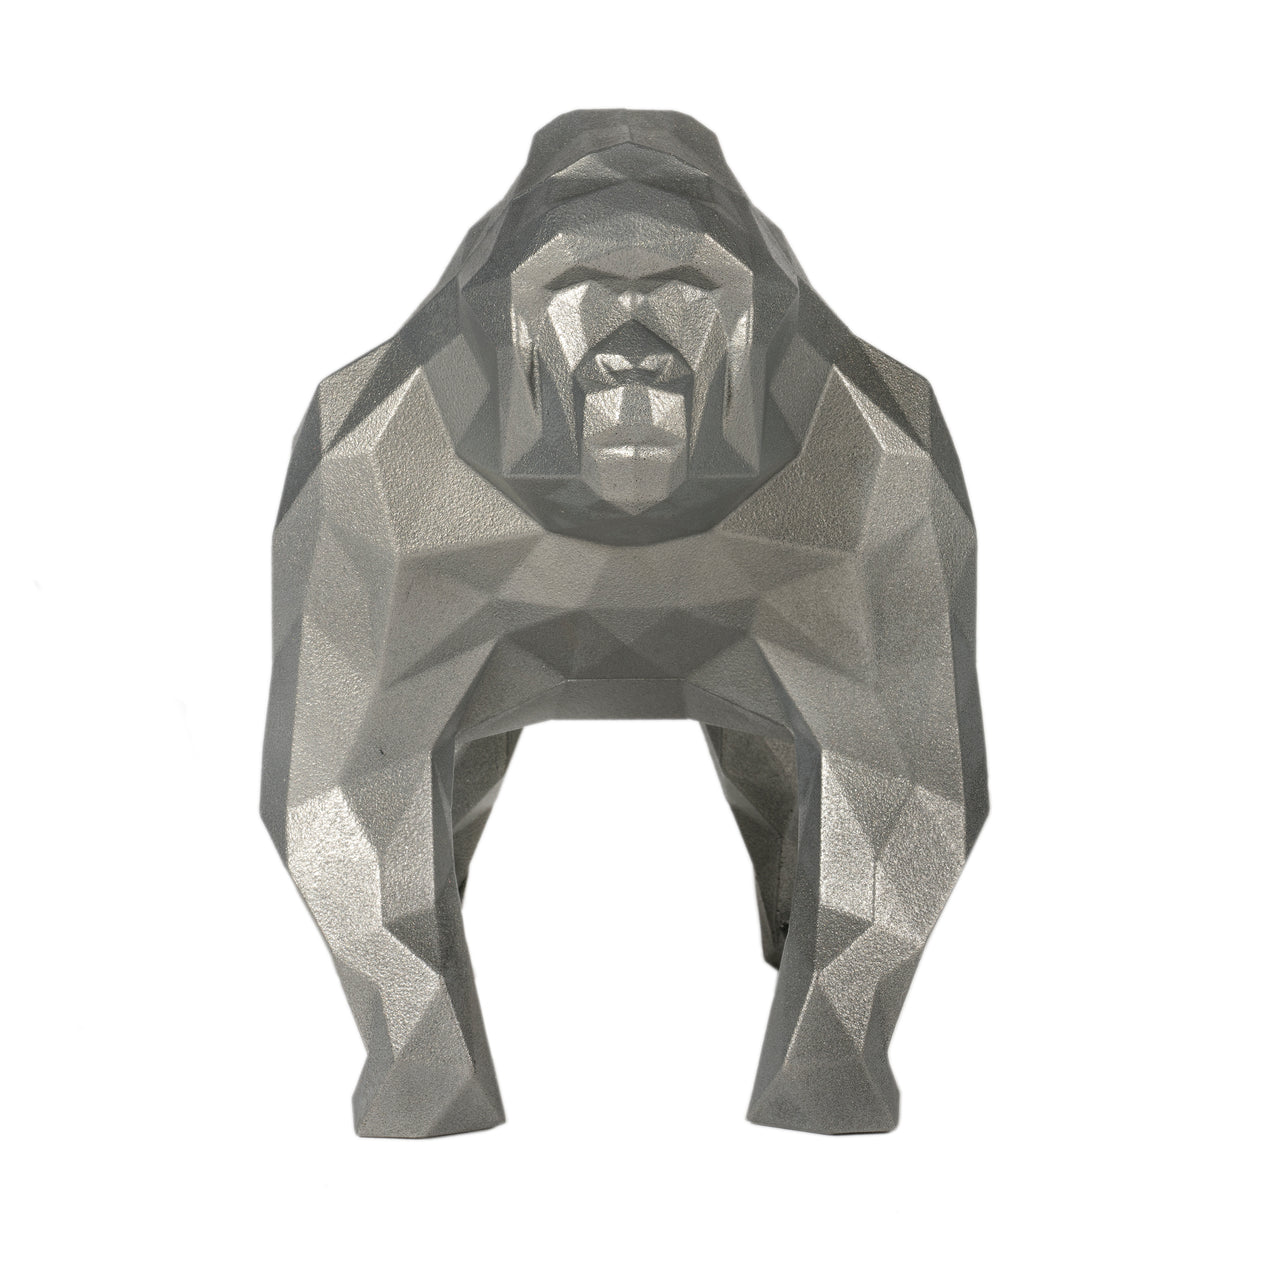 Gorilla Geometric sculpture - Gus in Metallic Silver